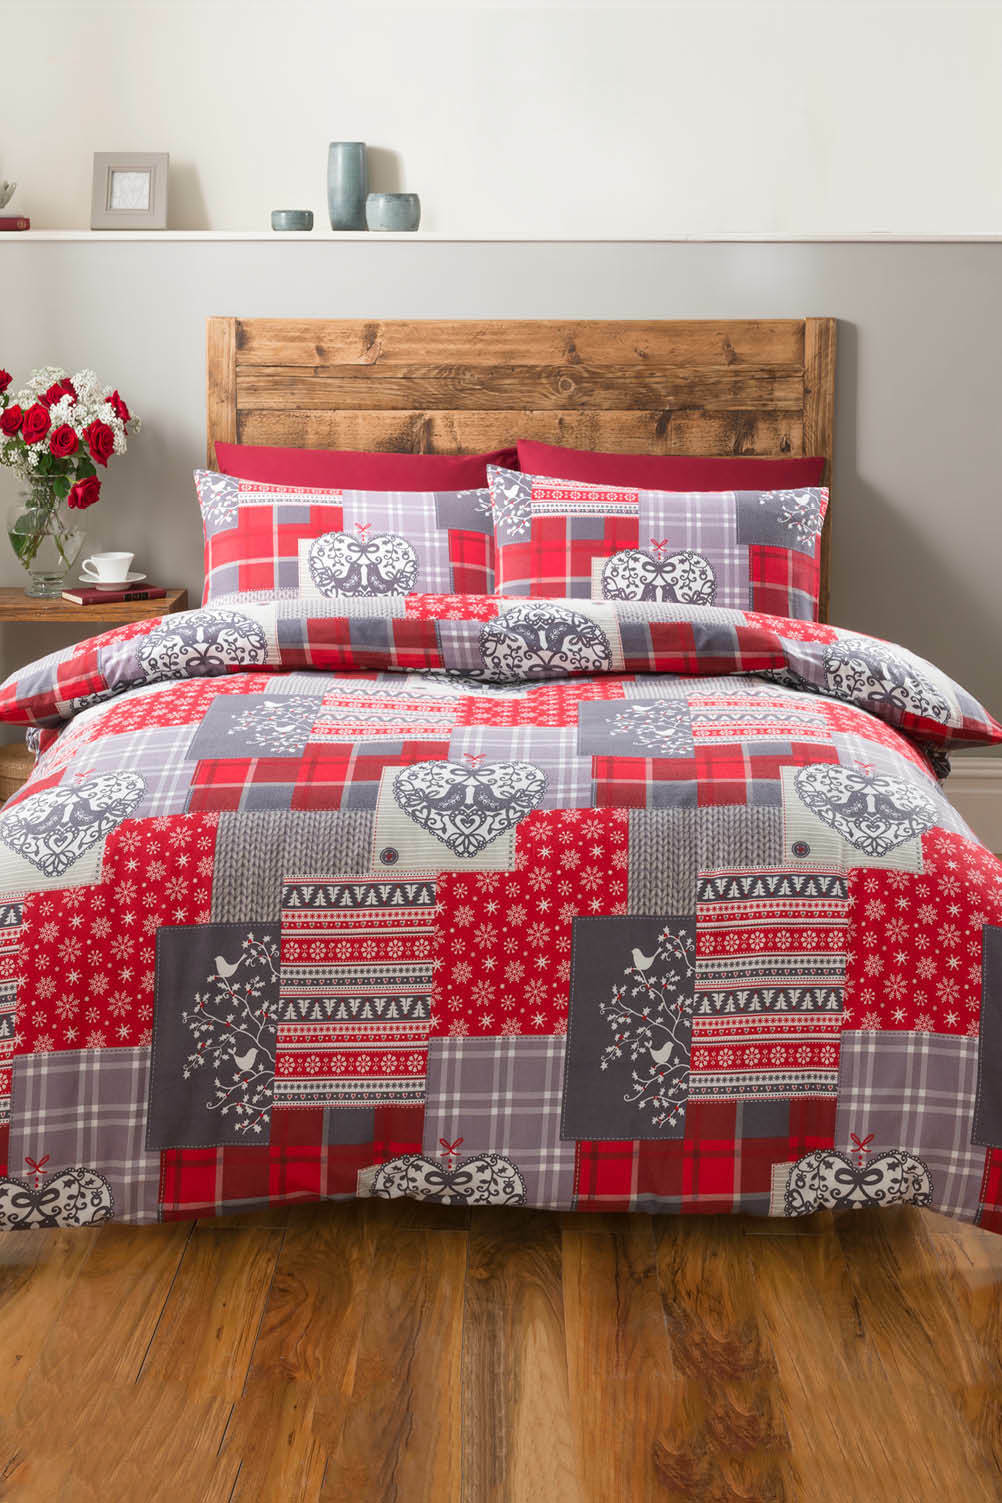 Alpine Patchwork Flannelette Duvet Set King Size Bedding Home Bedroom Super Soft